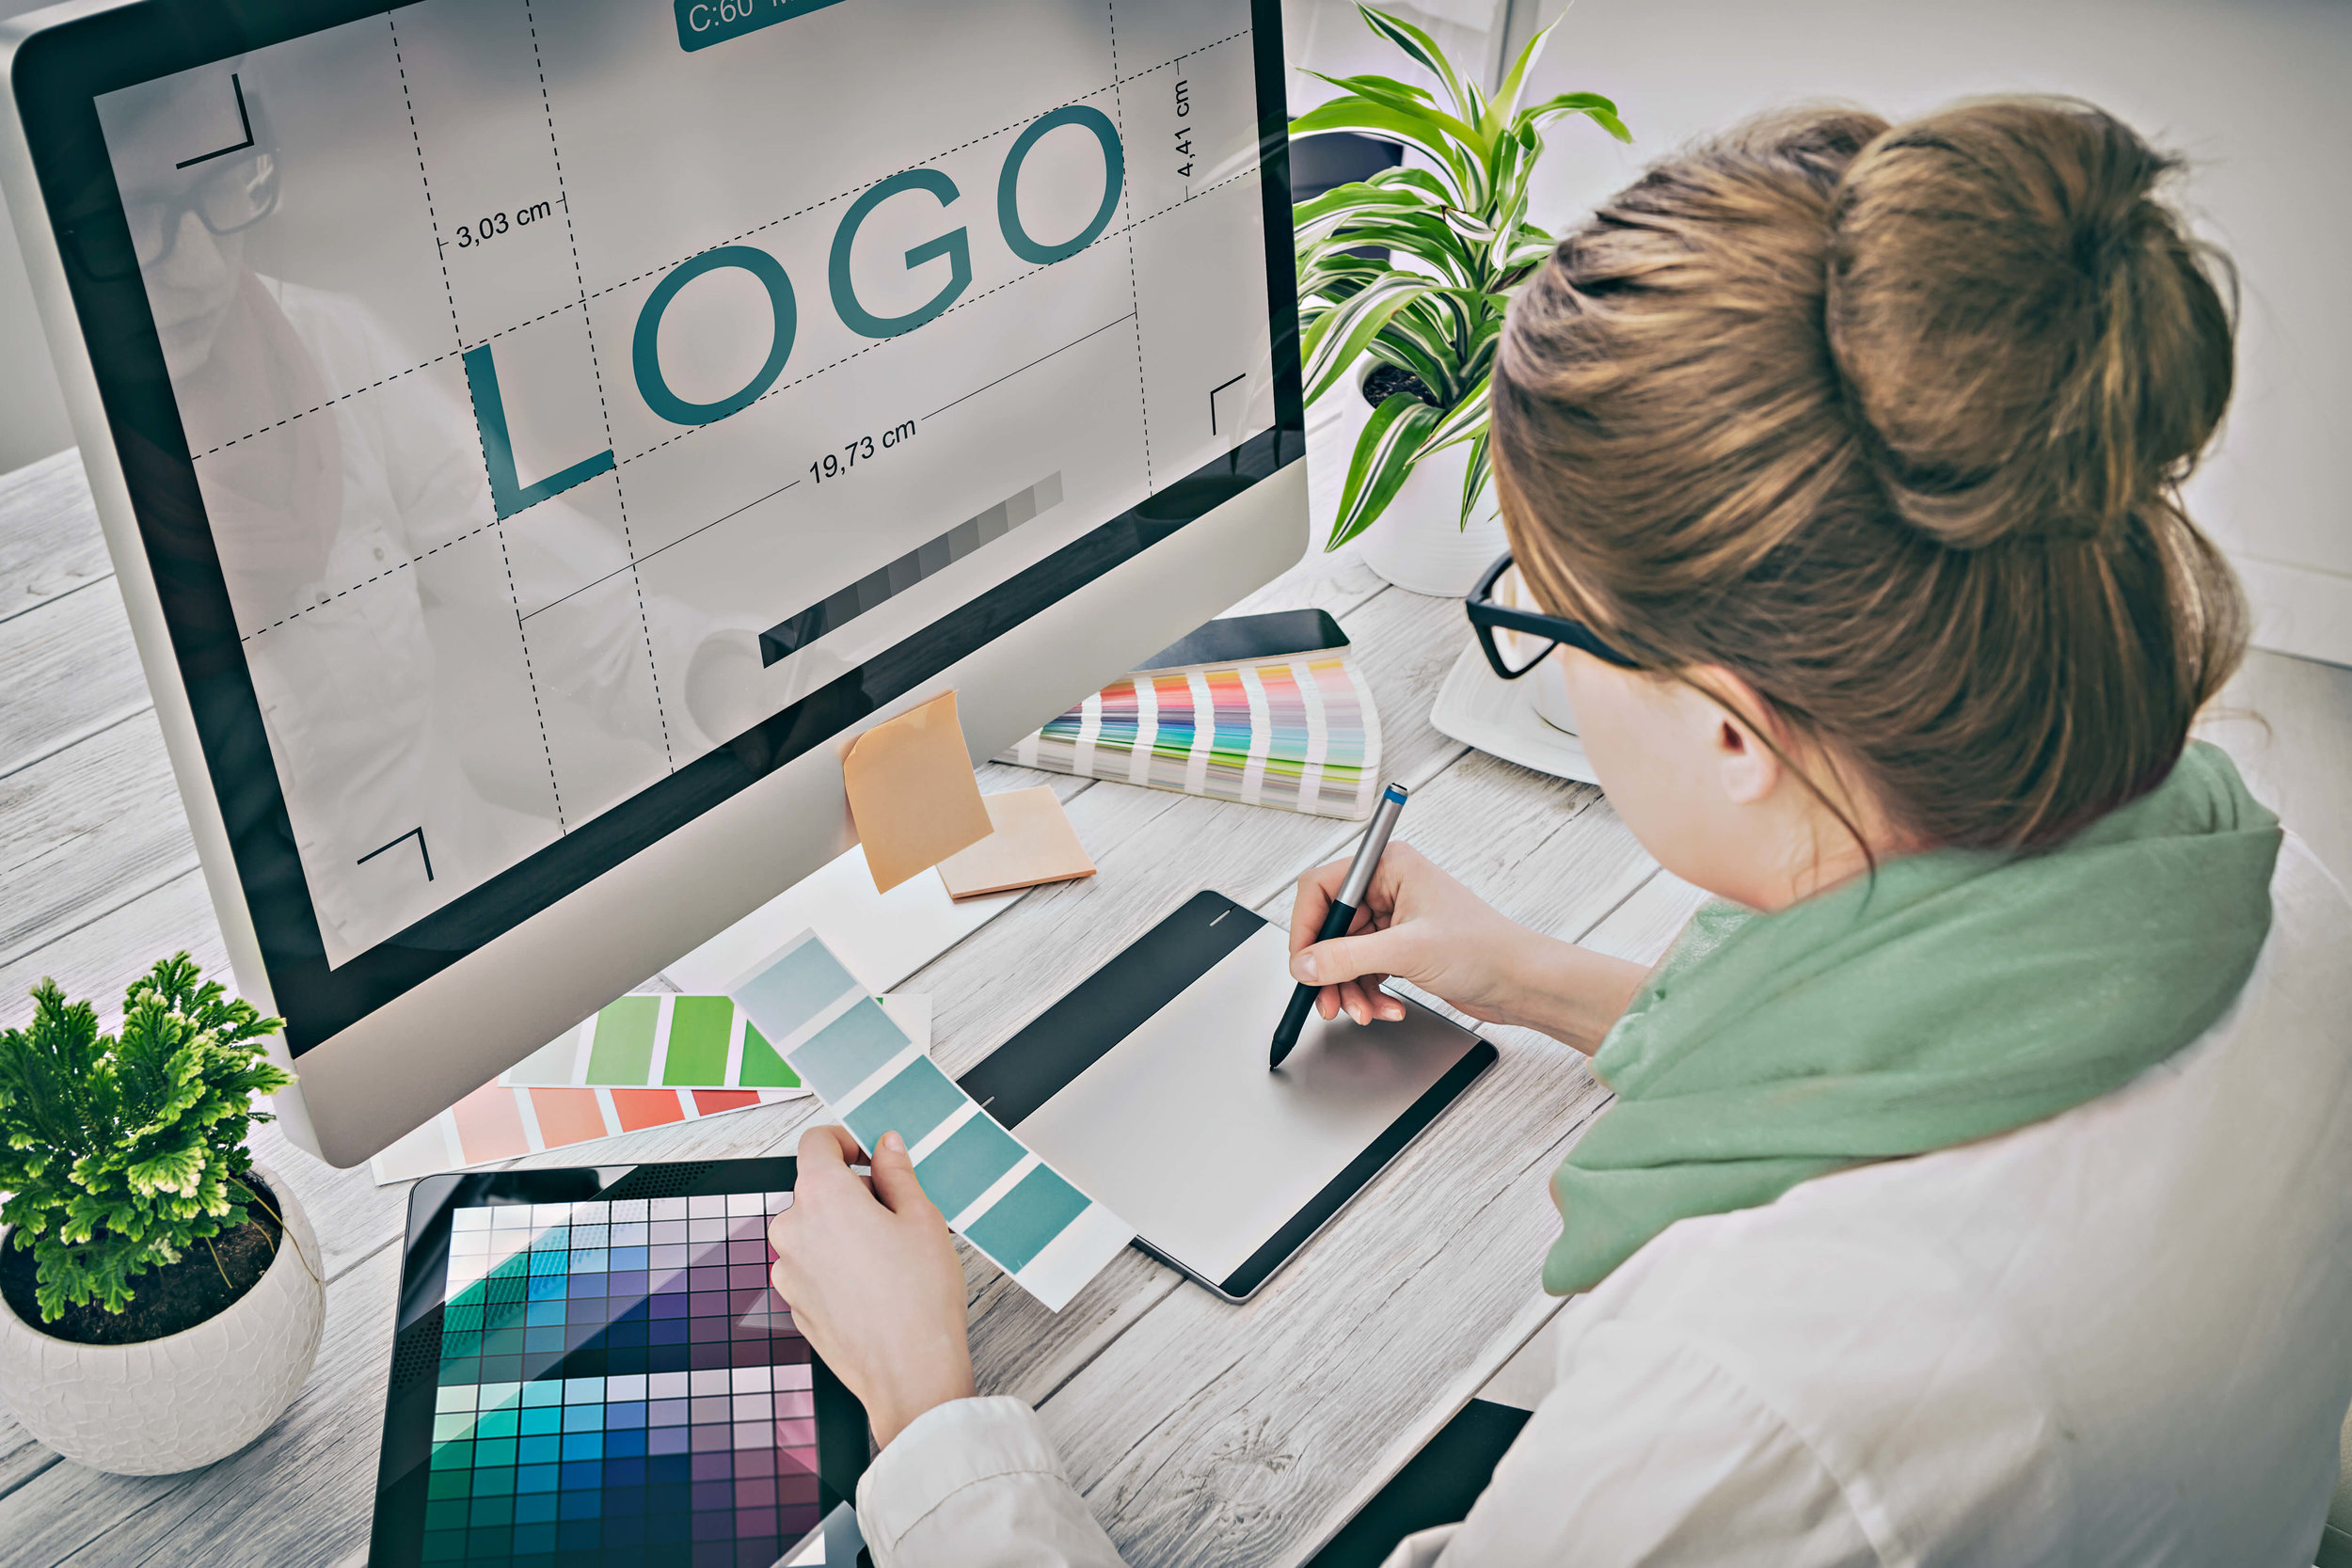 GRAPHIC DESIGN - BREAK THROUGH THE NOISE AND GET YOUR VOICE HEARDYou can have brilliant products and services, but if you can't get your message across and heard it doesn't matter how brilliant they are!We create unique, vibrant and impactful graphic designs across ALL formats to make your brand and message stand out in the market place…and it's affordable!